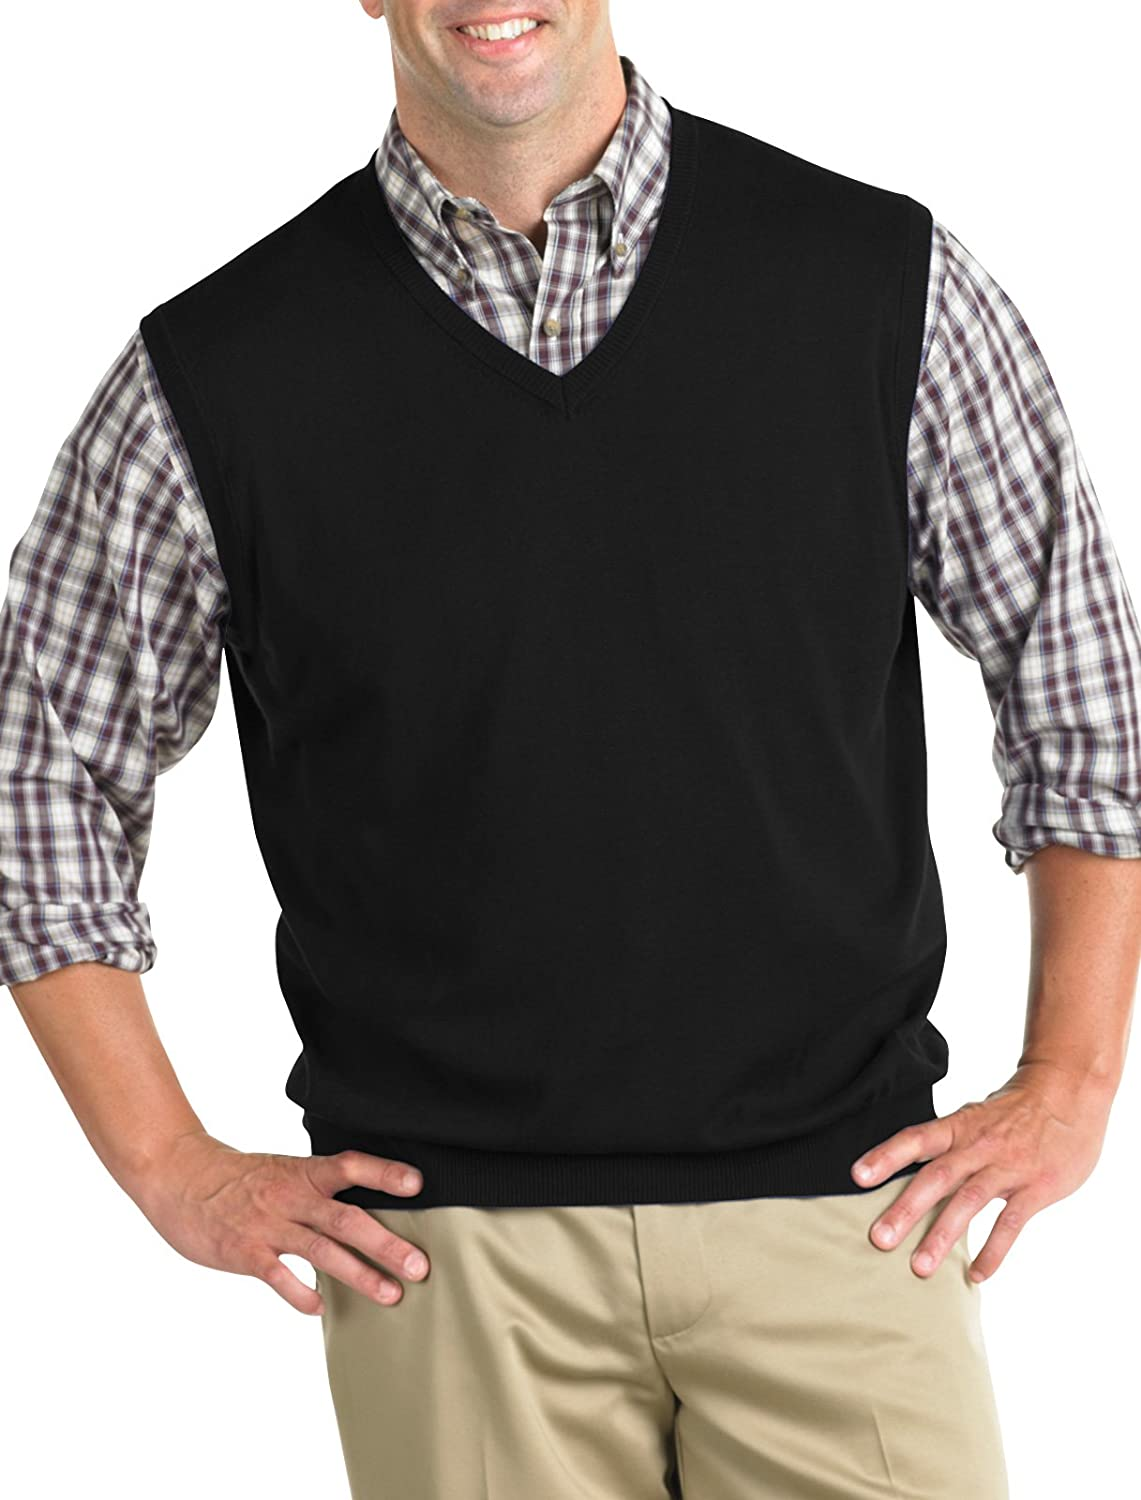 Harbor Bay DXL Big and Tall V-Neck Sweater Vest at Amazon Men's ...